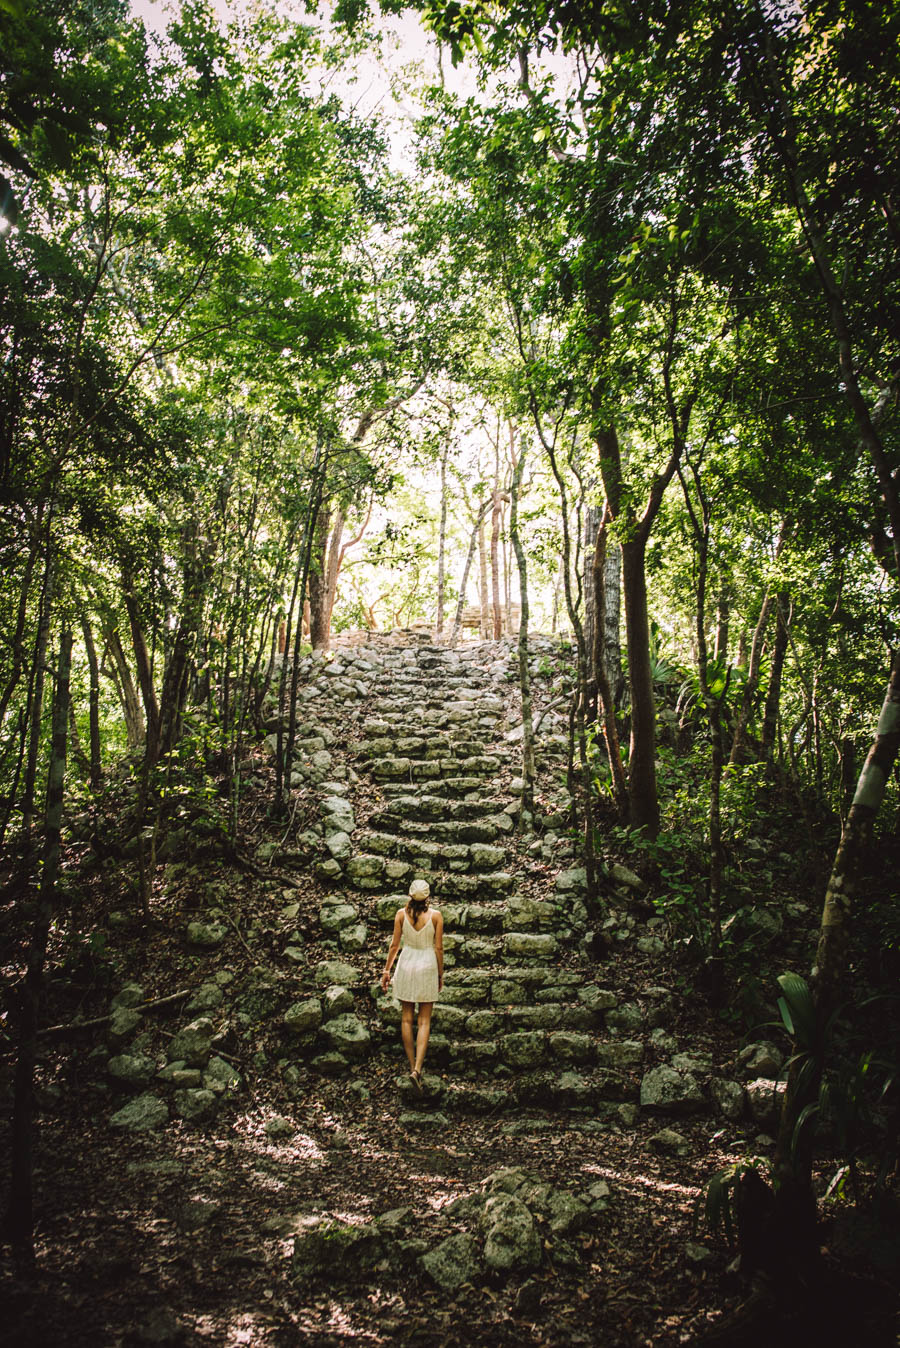 Coba is one of the best day trips from Tulum. Coba is known as one of the best and most important Mayan ruin sites in Mexico. Discover when to go to Coba and how to get to Coba.